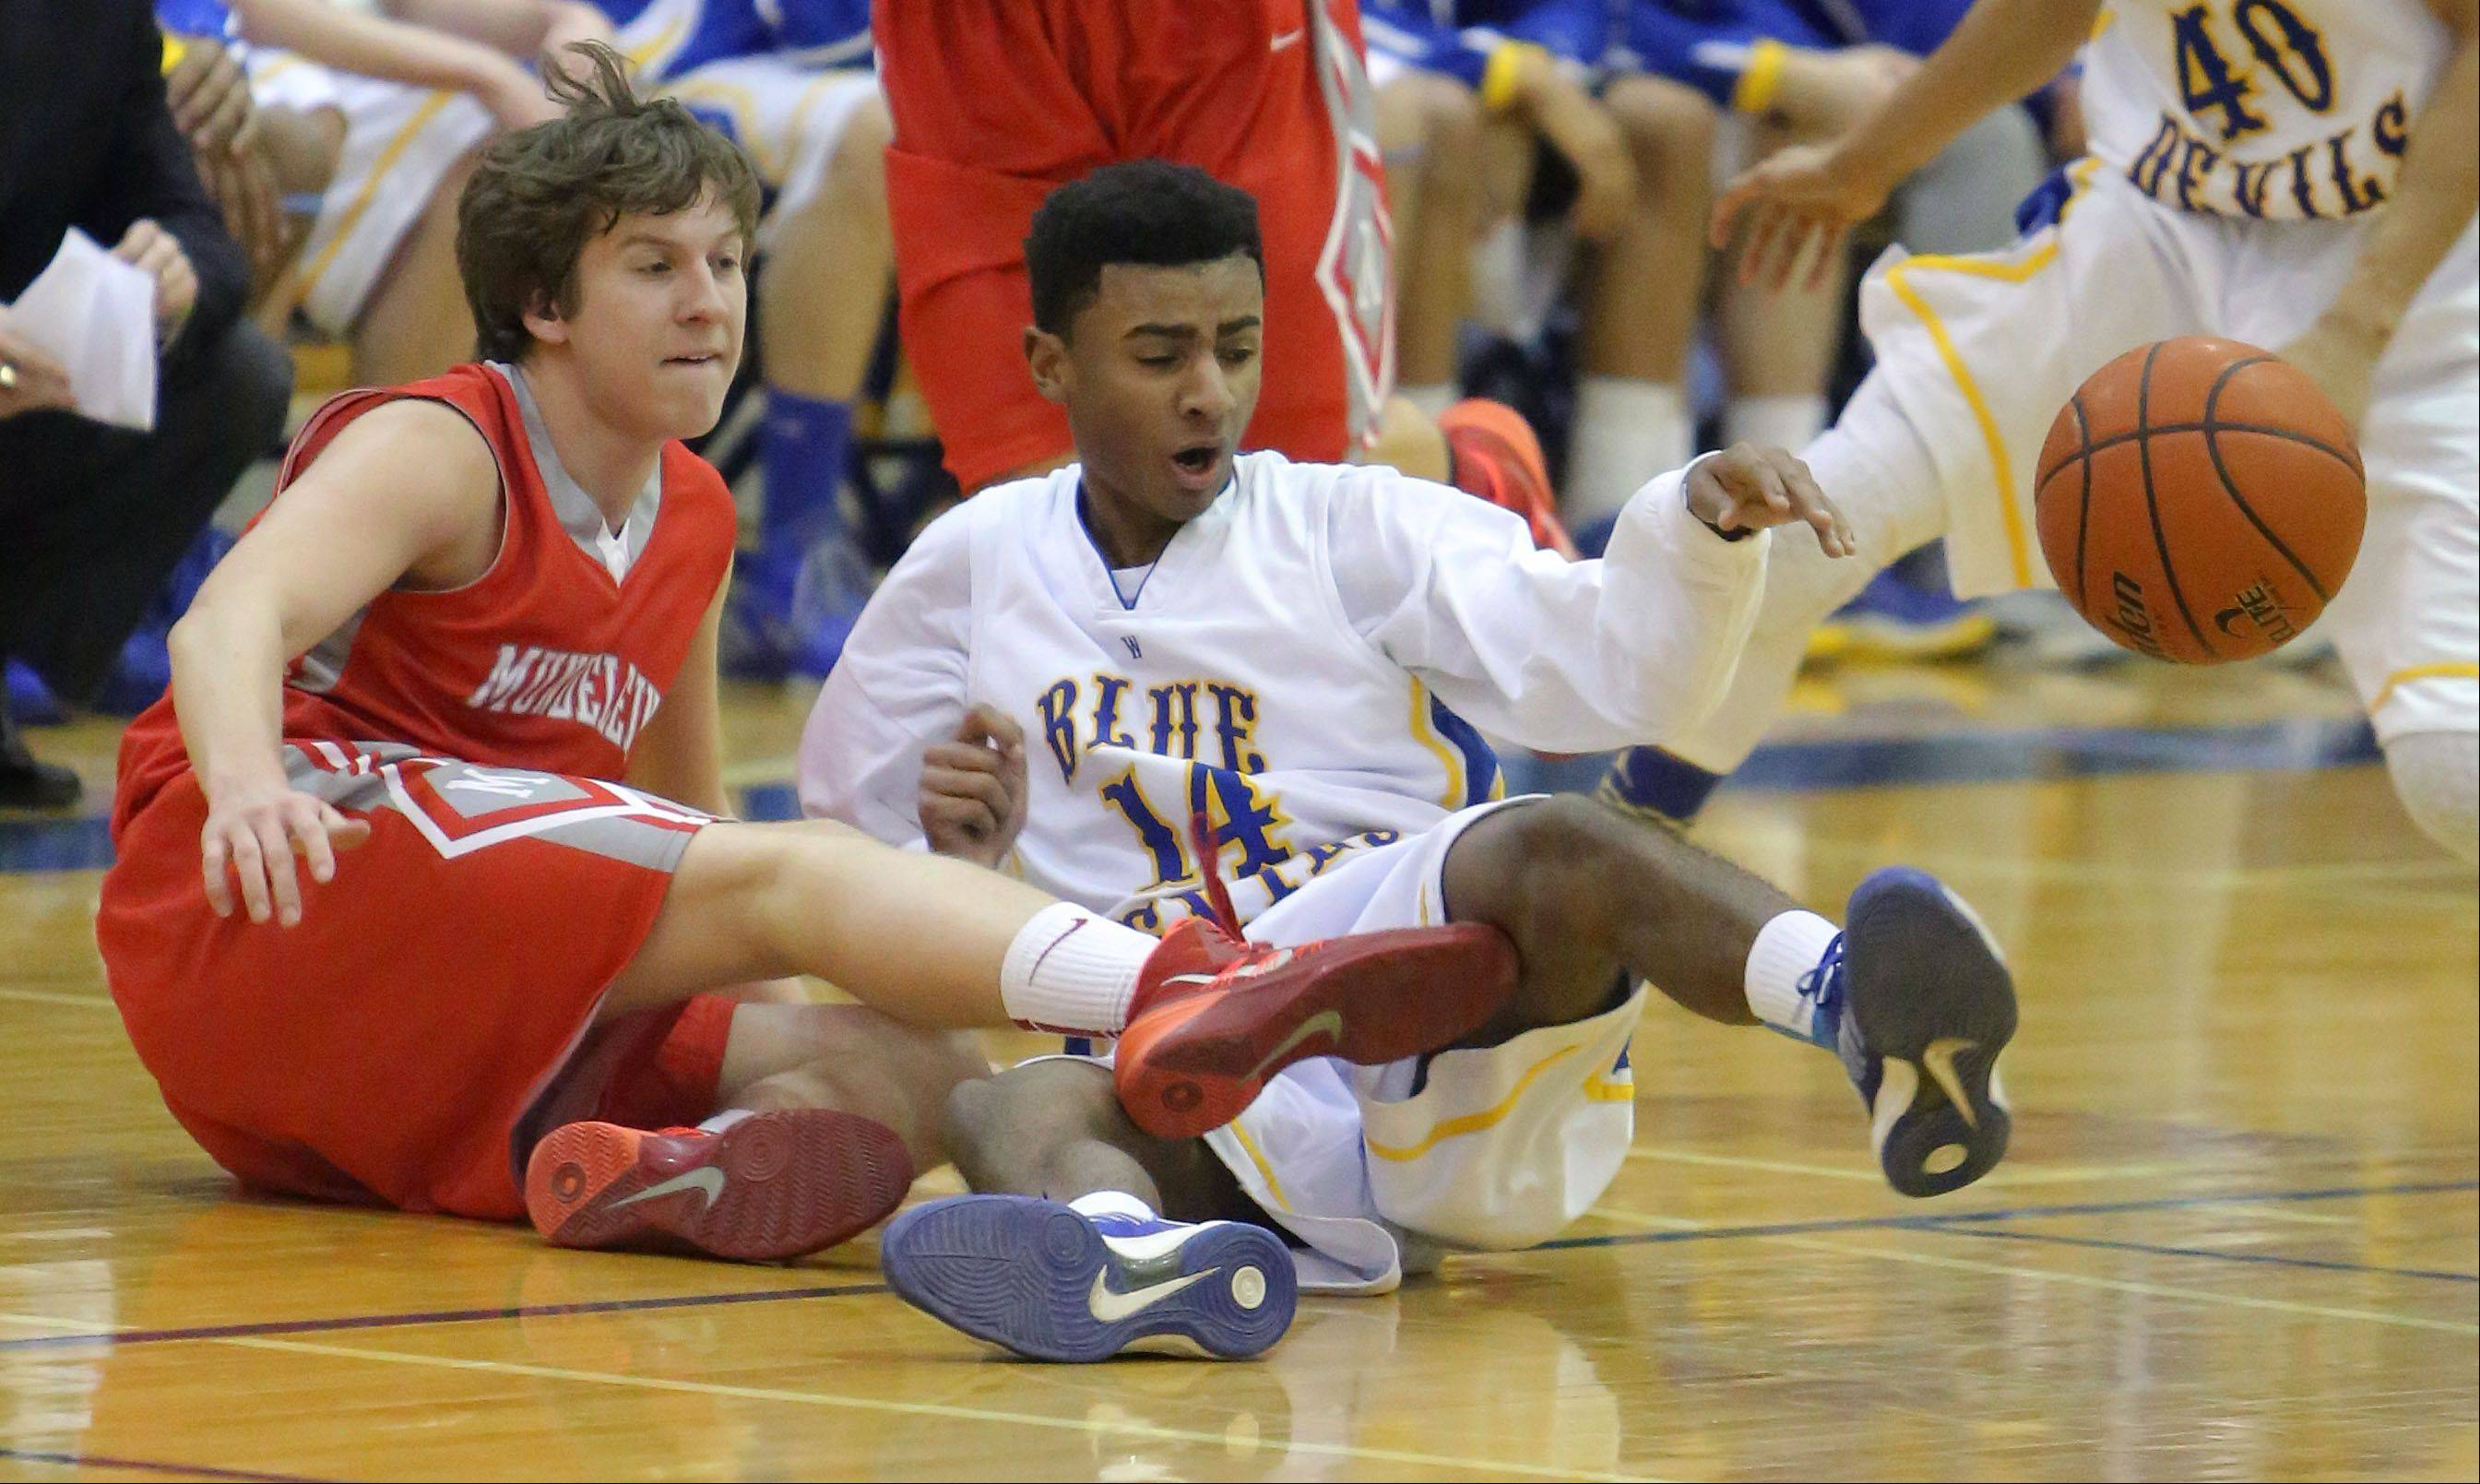 Mundelein�s Sam Nelson, left, and Warren�s Adrian Deere scramble for a loose ball.